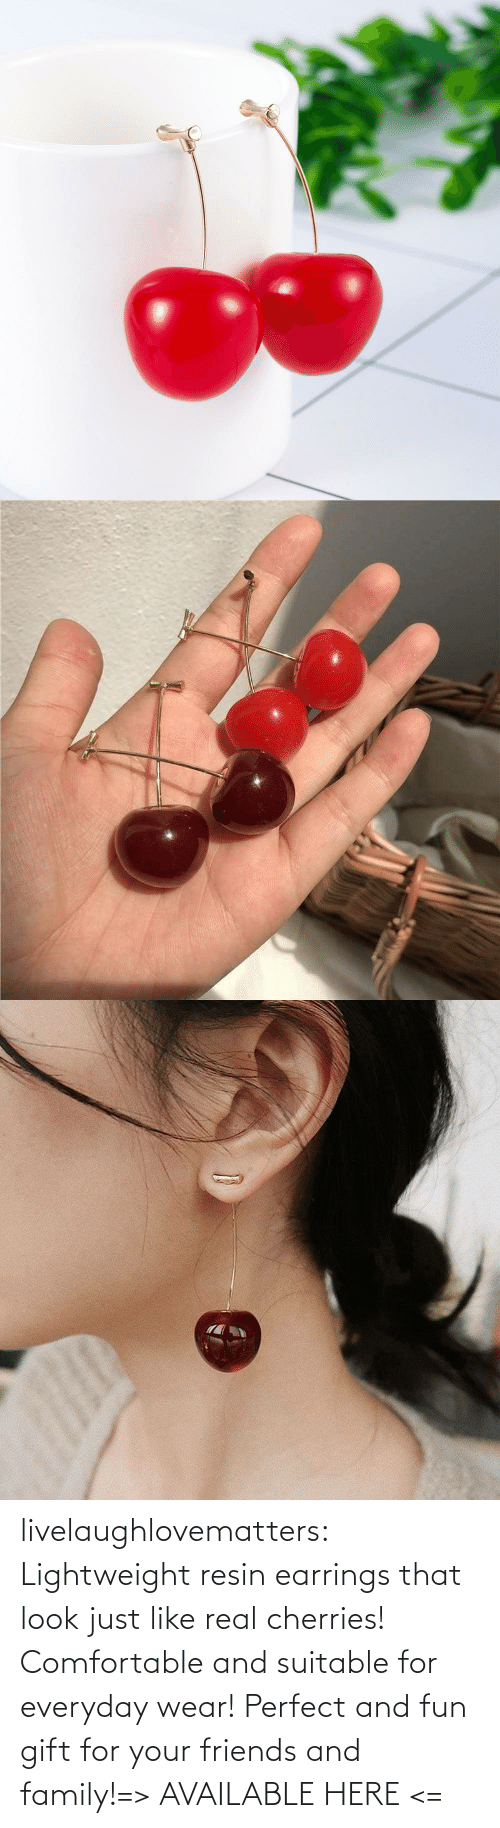 realistic: livelaughlovematters:  Lightweight resin earrings that look just like real cherries! Comfortable and suitable for everyday wear! Perfect and fun gift for your friends and family!=> AVAILABLE HERE <=